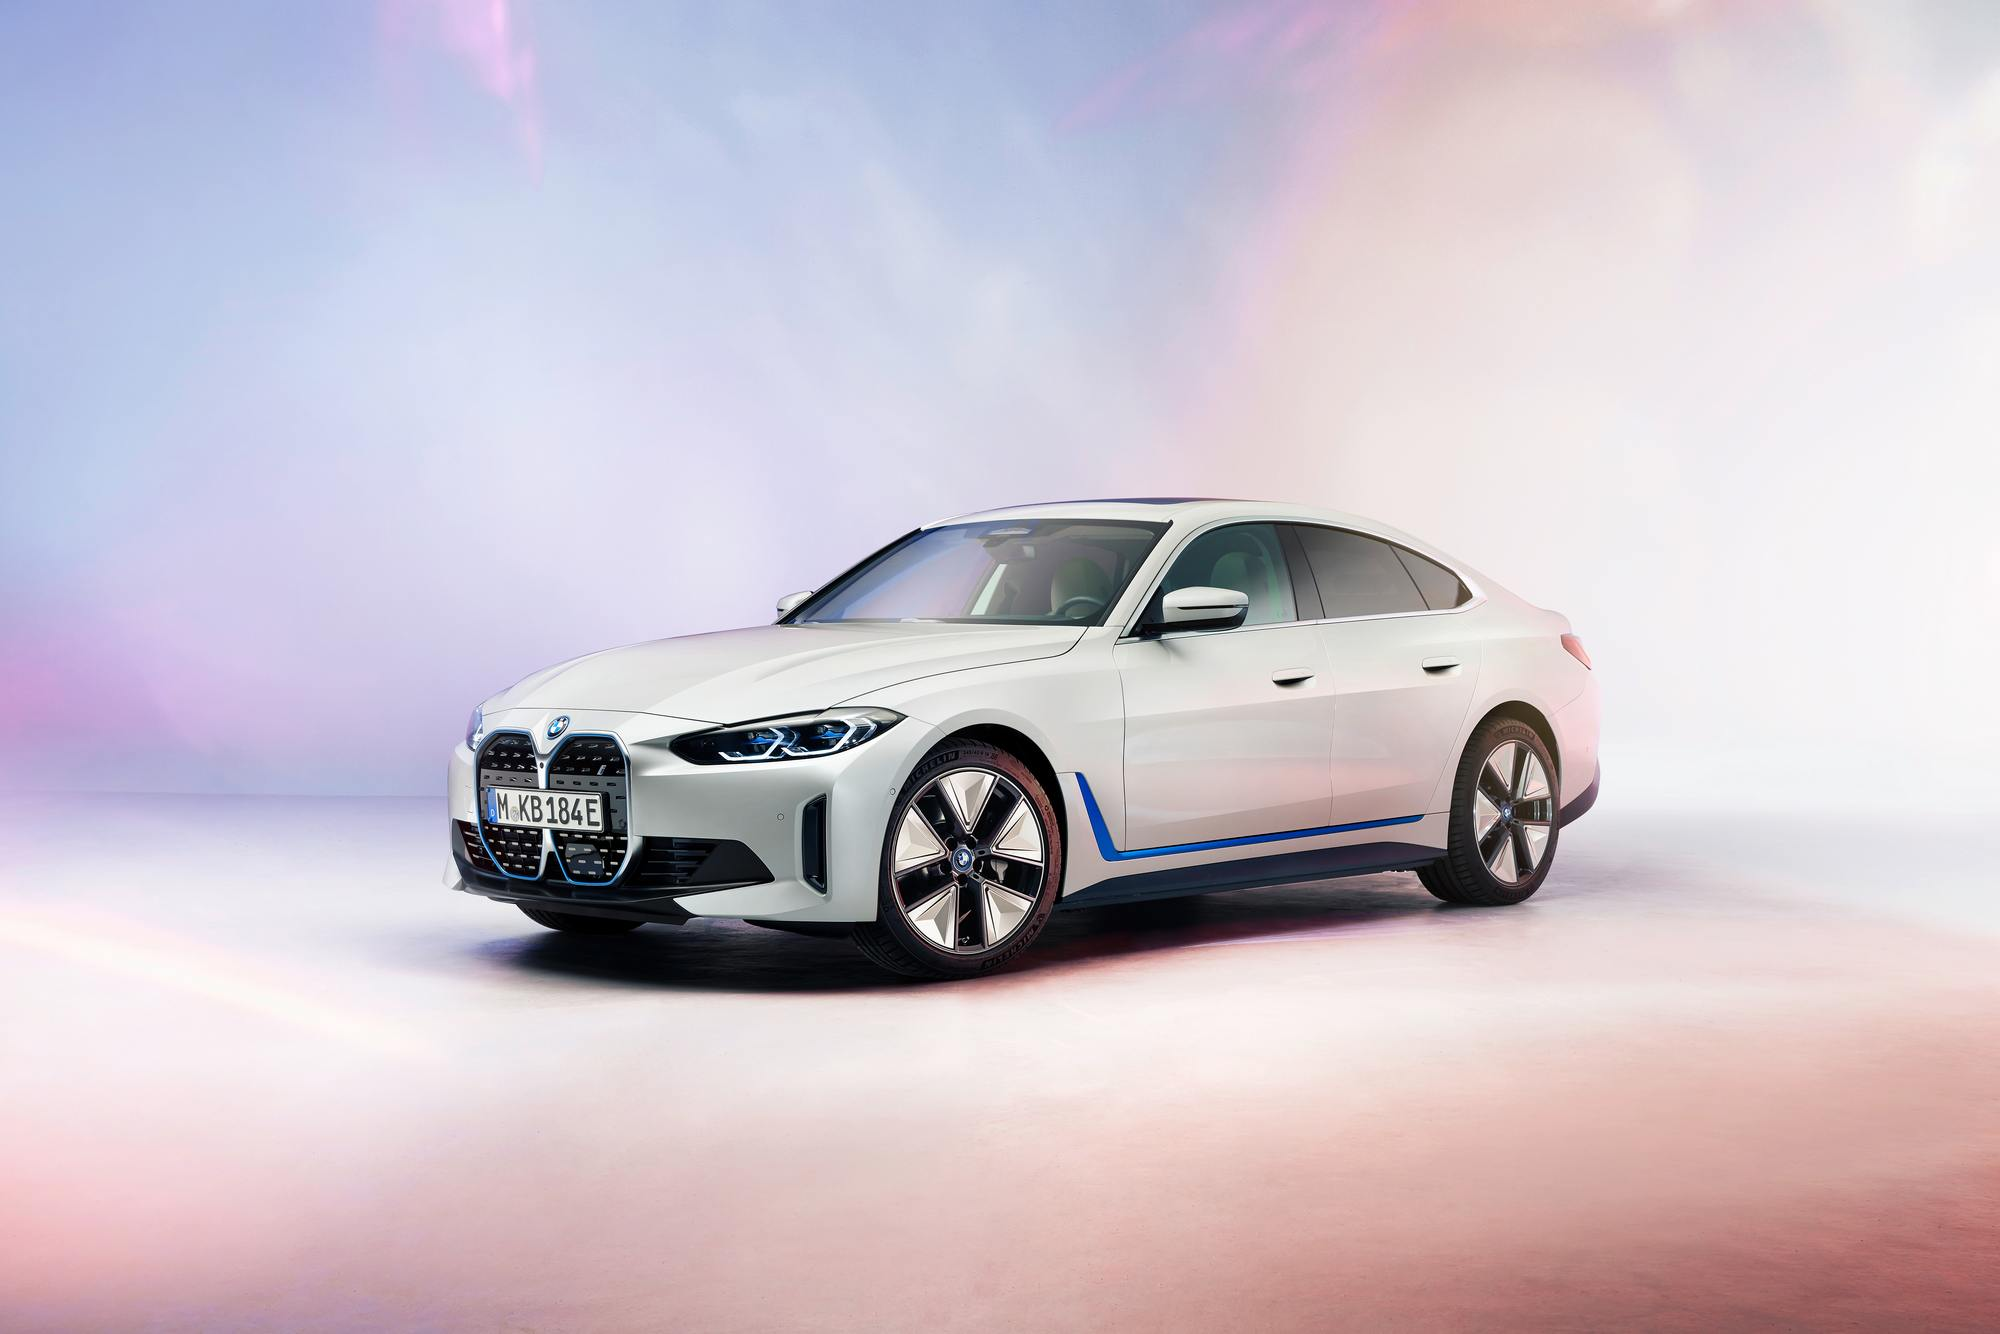 Bmw Offers A First Look At Its Production I4 Electric Sedan Samachar Central